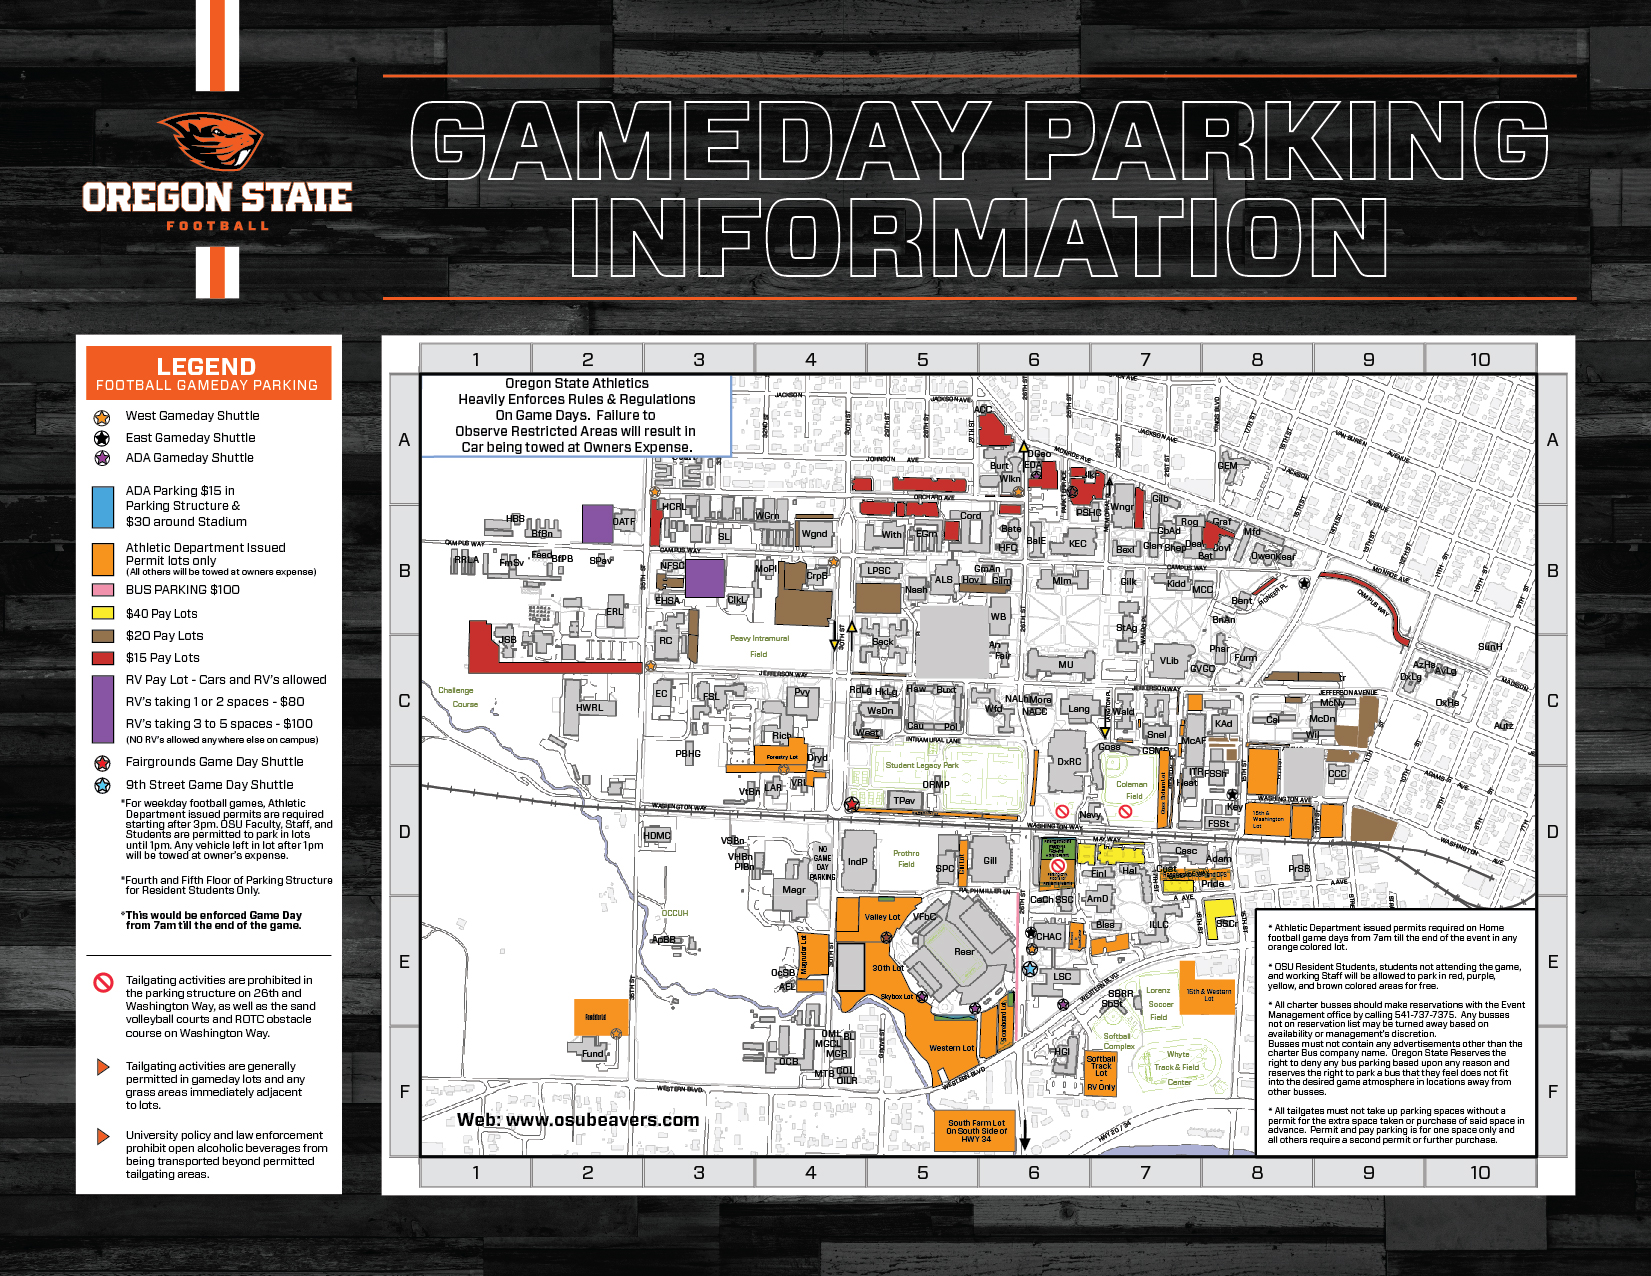 Osu Parking Map Football Gameday Information   Oregon State University Athletics